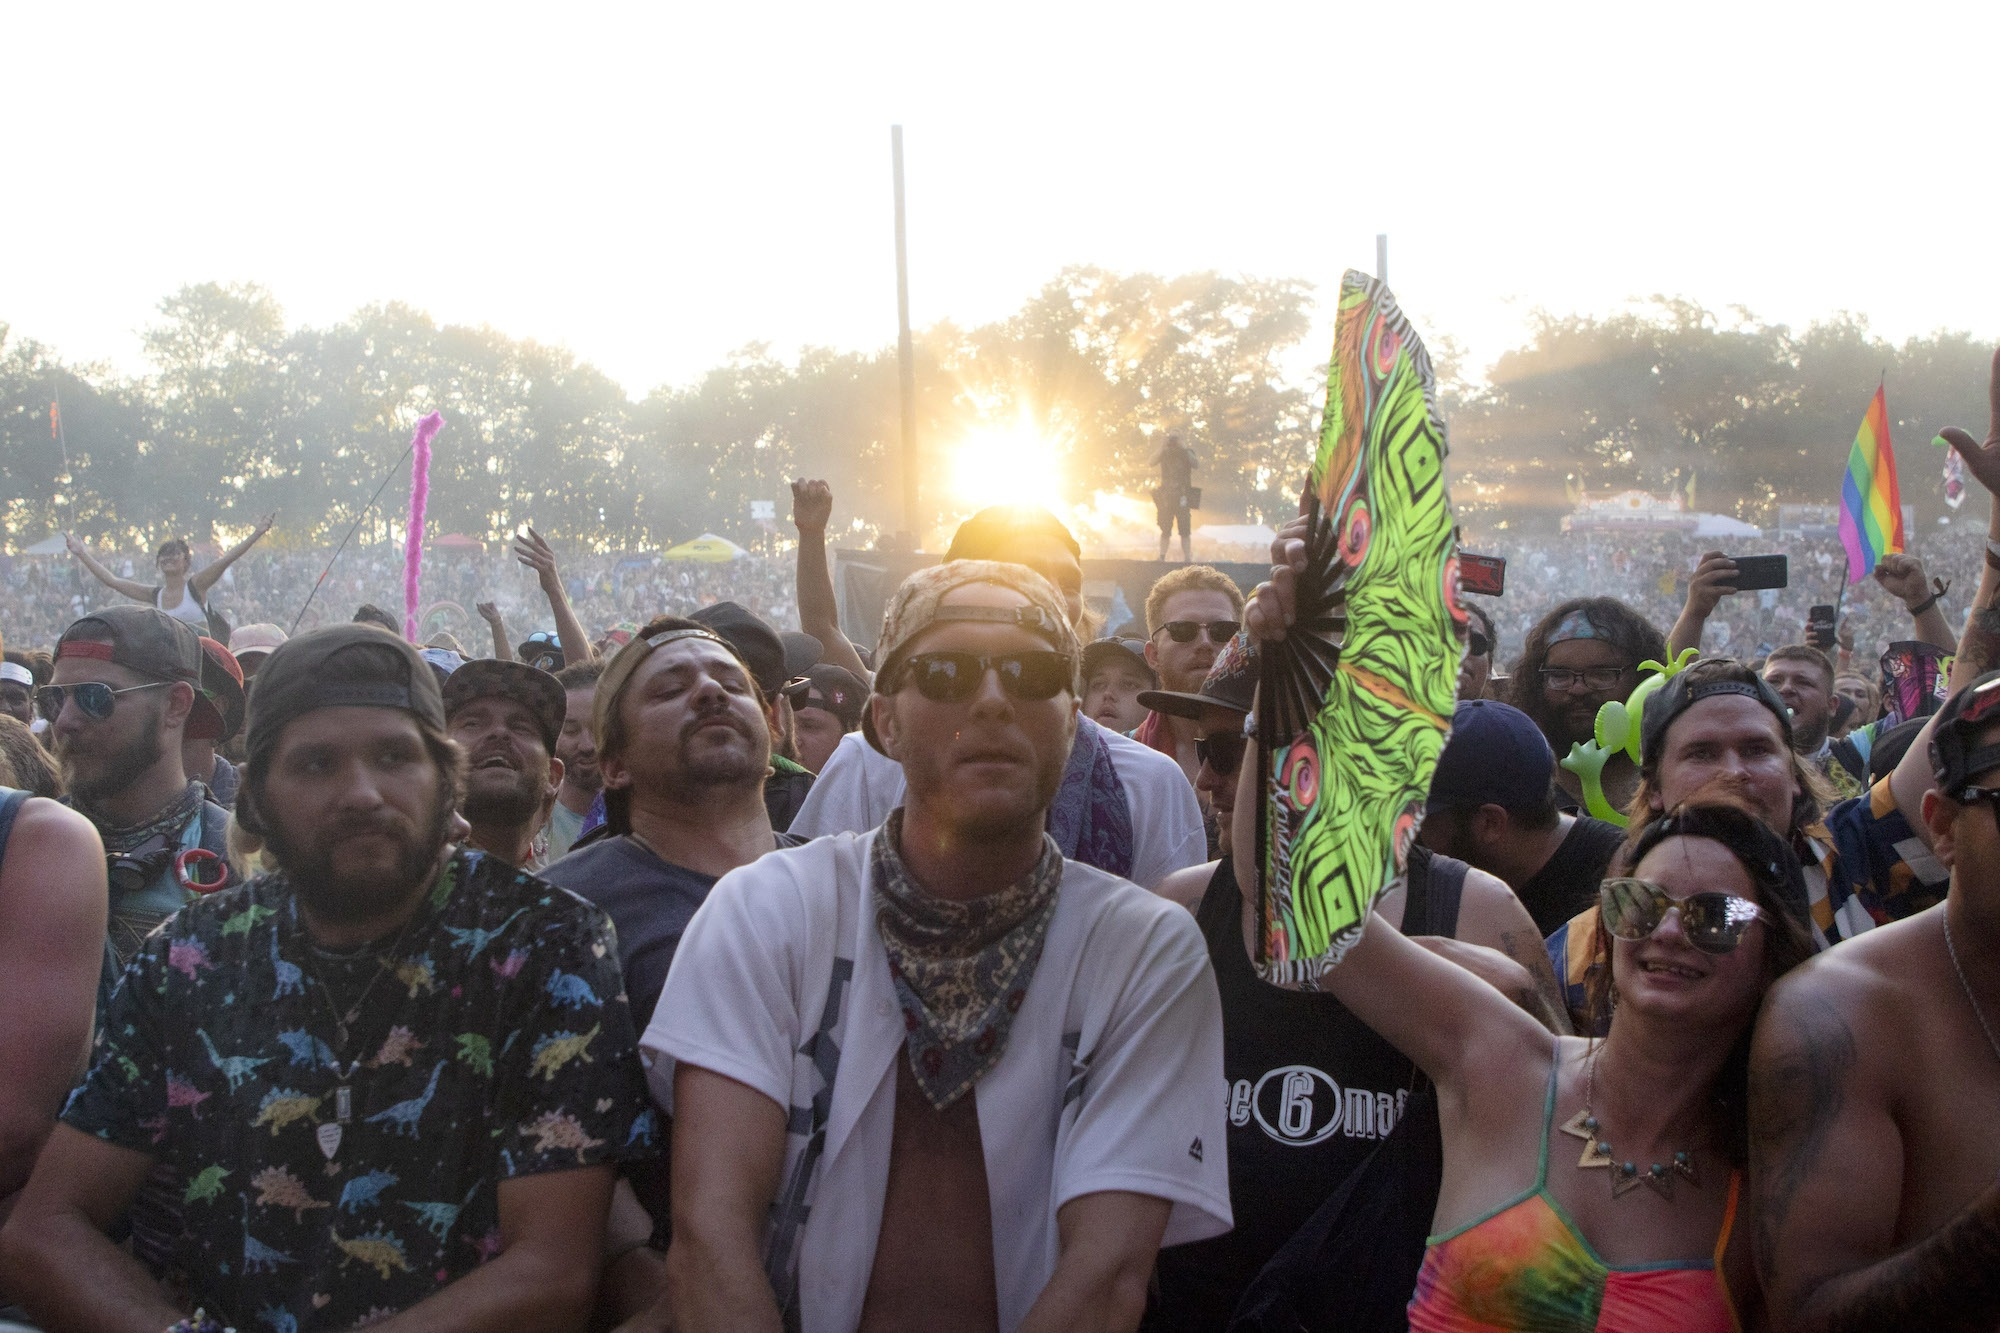 Summer Camp Music Fest - Day 2 [GALLERY] 5